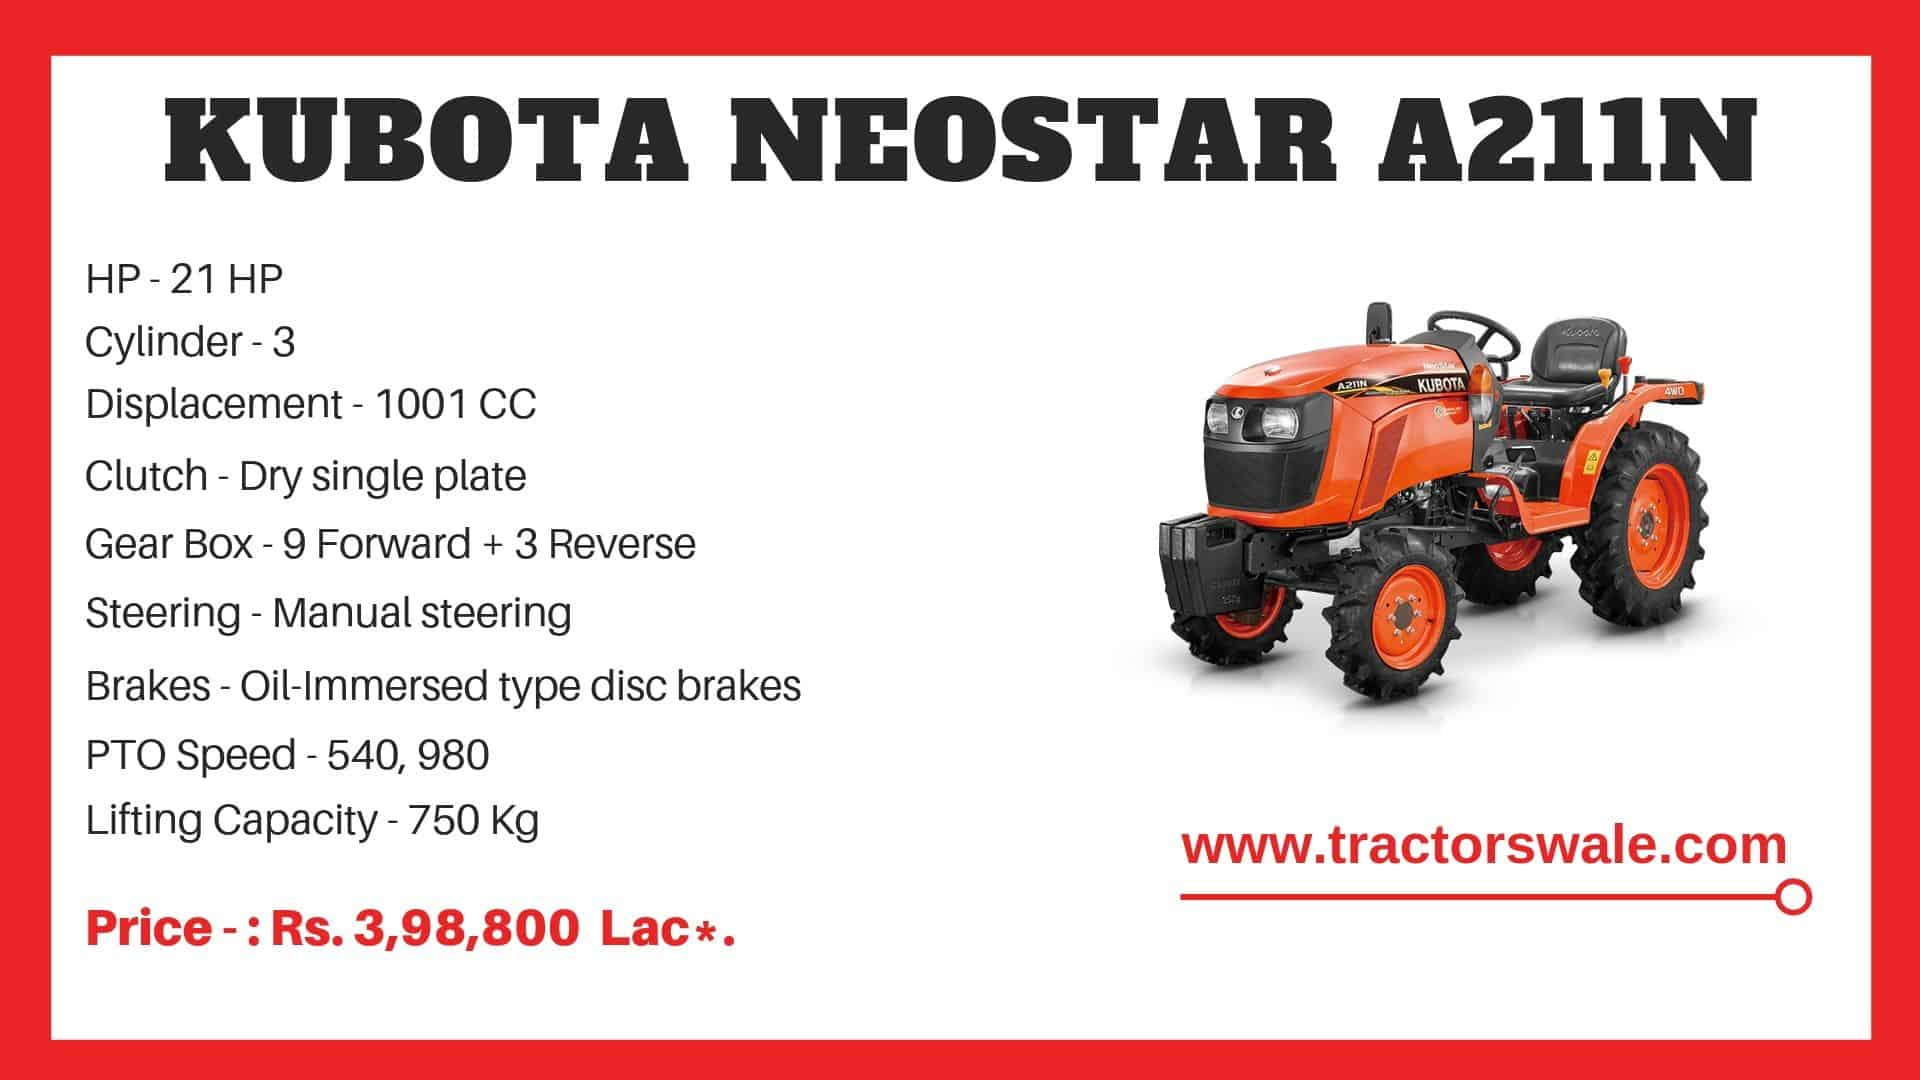 Specifications Of Kubota A211N Tractor